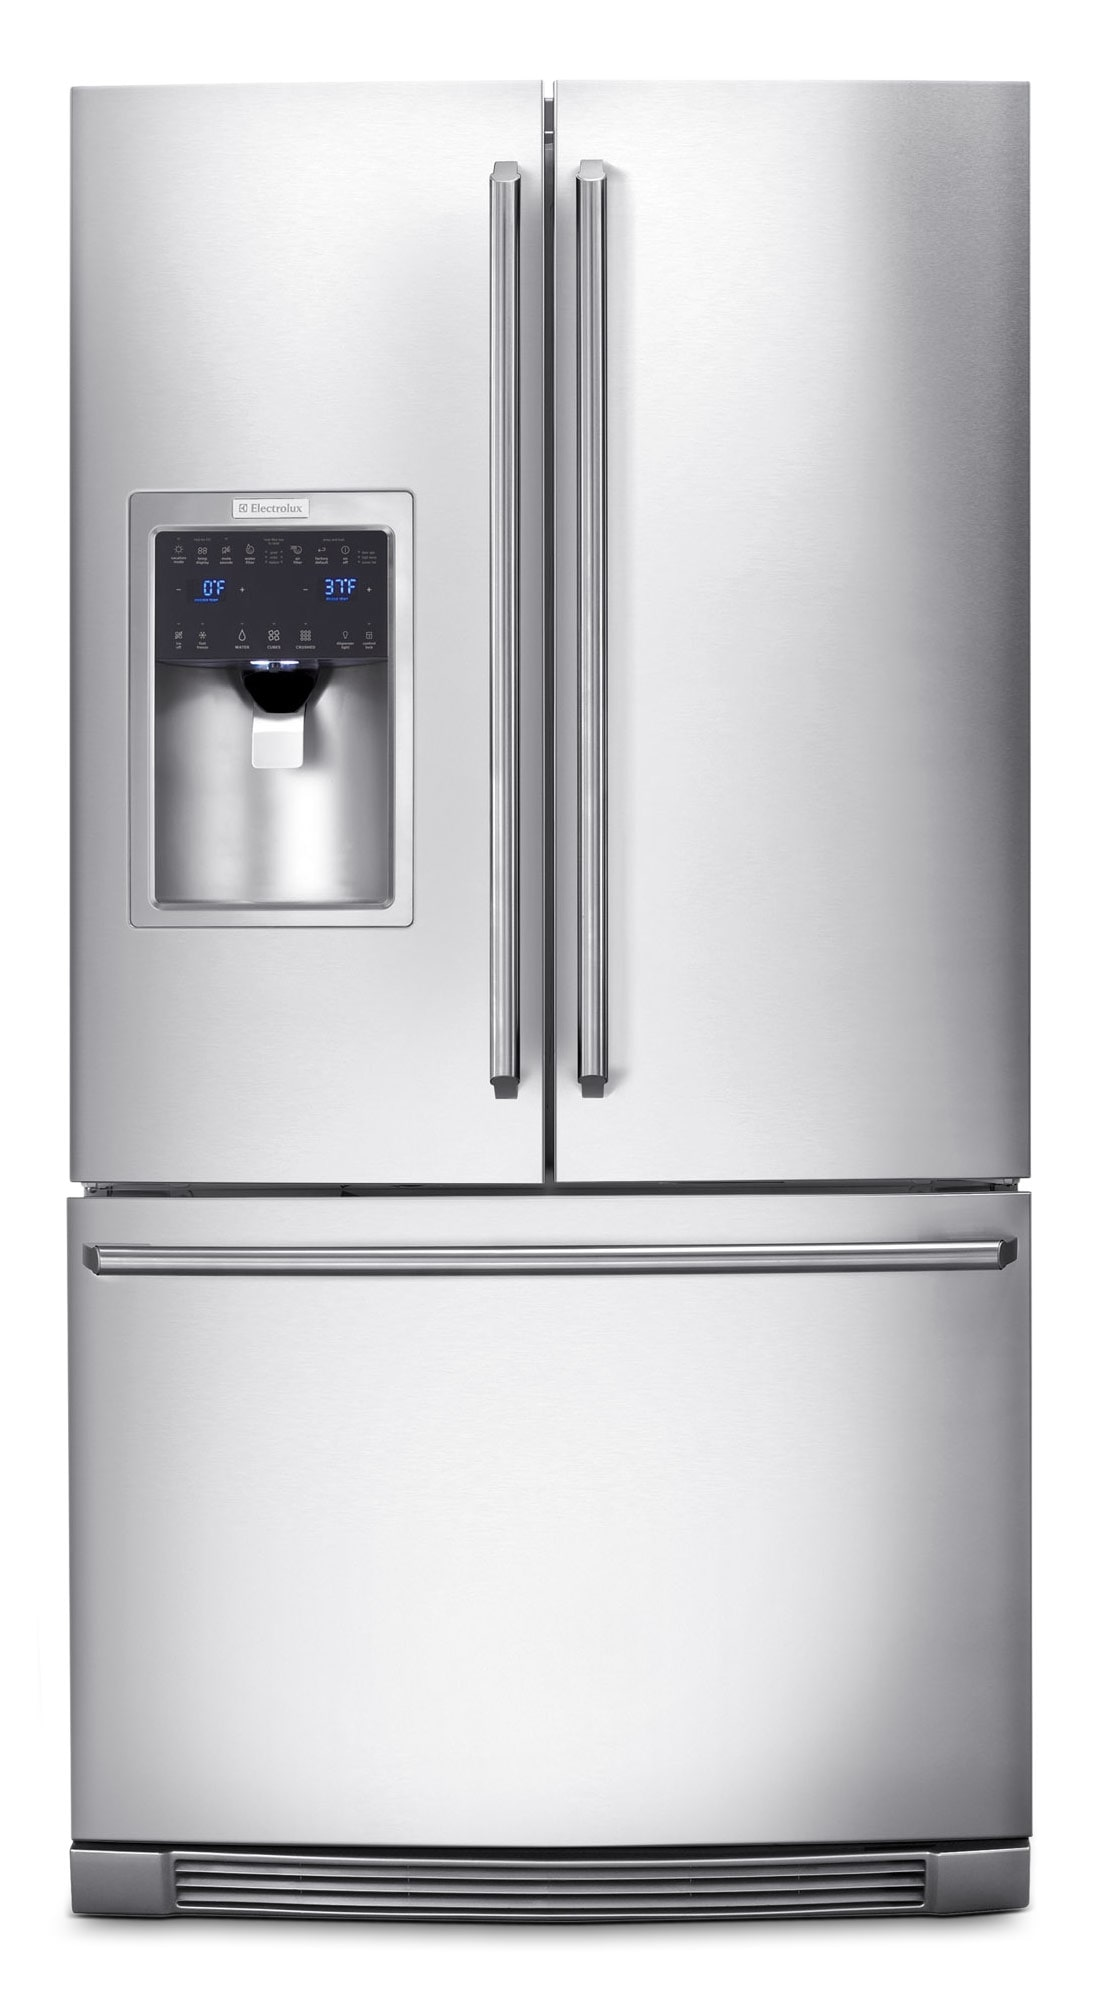 Electrolux Stainless Steel Counter-Depth French Door Refrigerator (22.63 Cu. Ft.) - EI23BC35KS